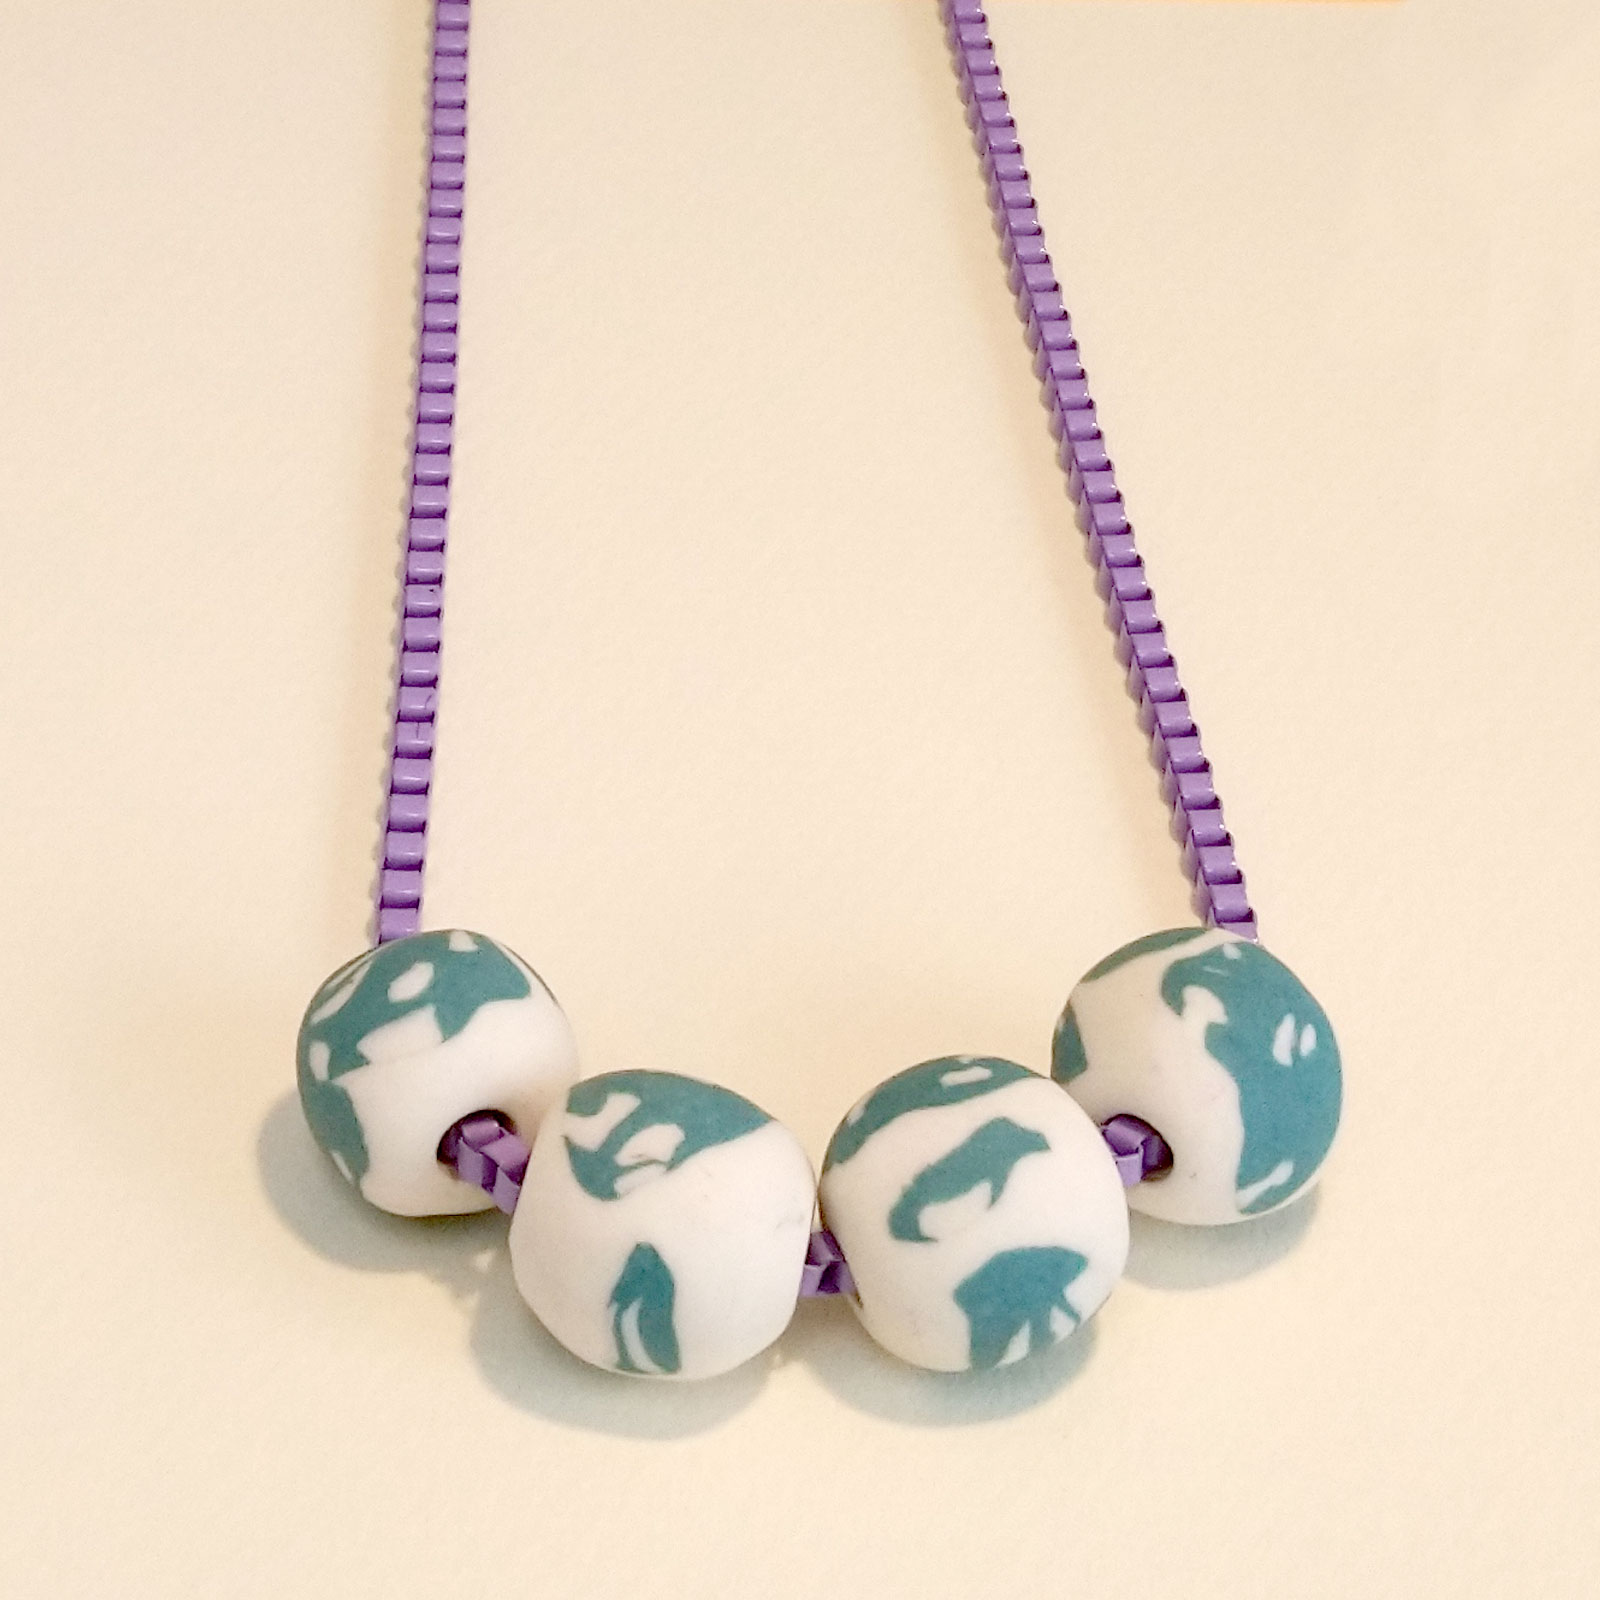 Porcelain Bead necklace